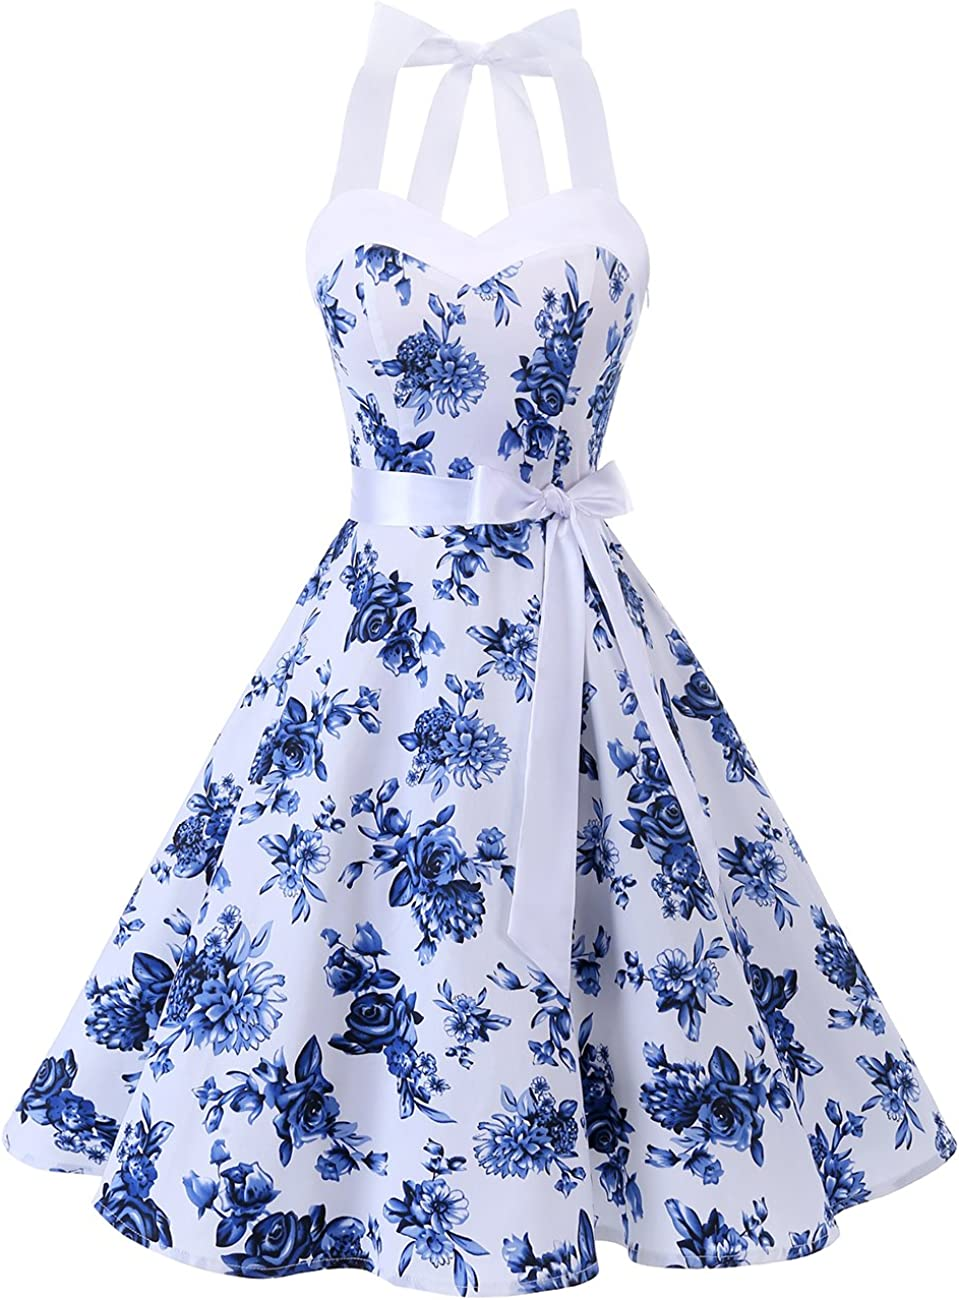 TALLA XS. Dresstells® Halter 50s Rockabilly Polka Dots Audrey Dress Retro Cocktail Dress White Blue Flower XS